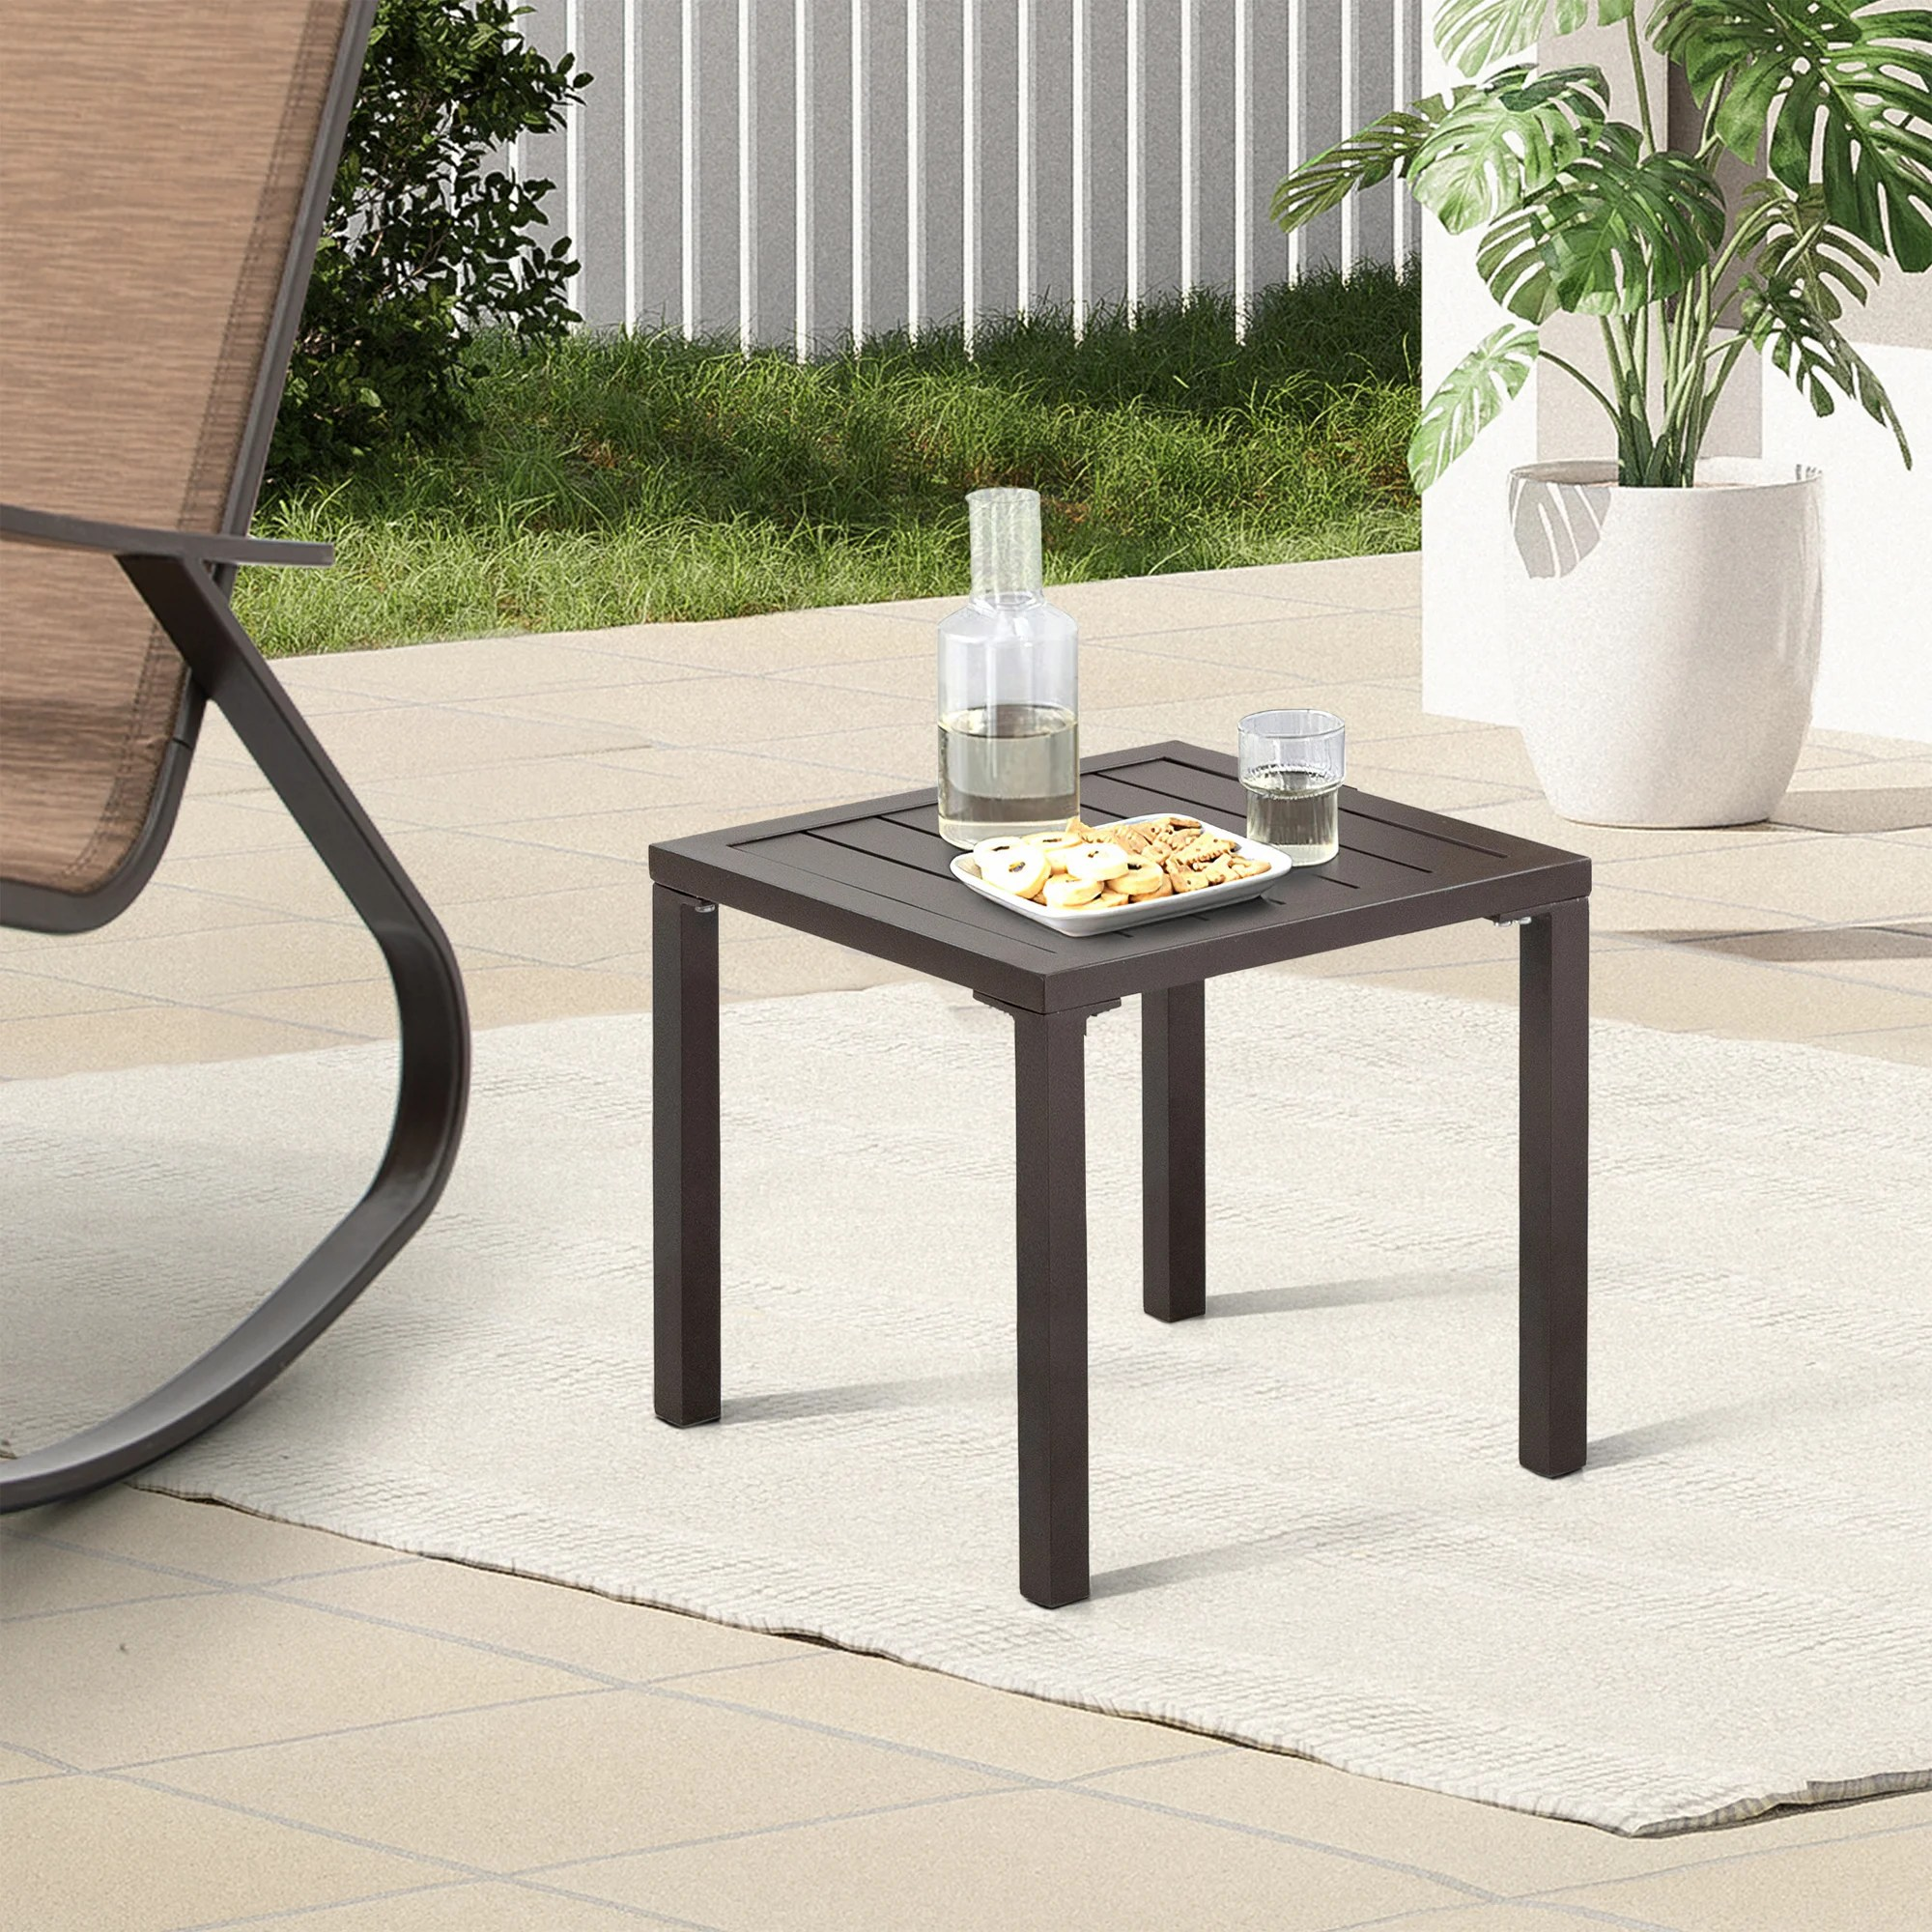 chaise lounge table aluminum square side end table small patio coffee bistro table for outdoor indoor